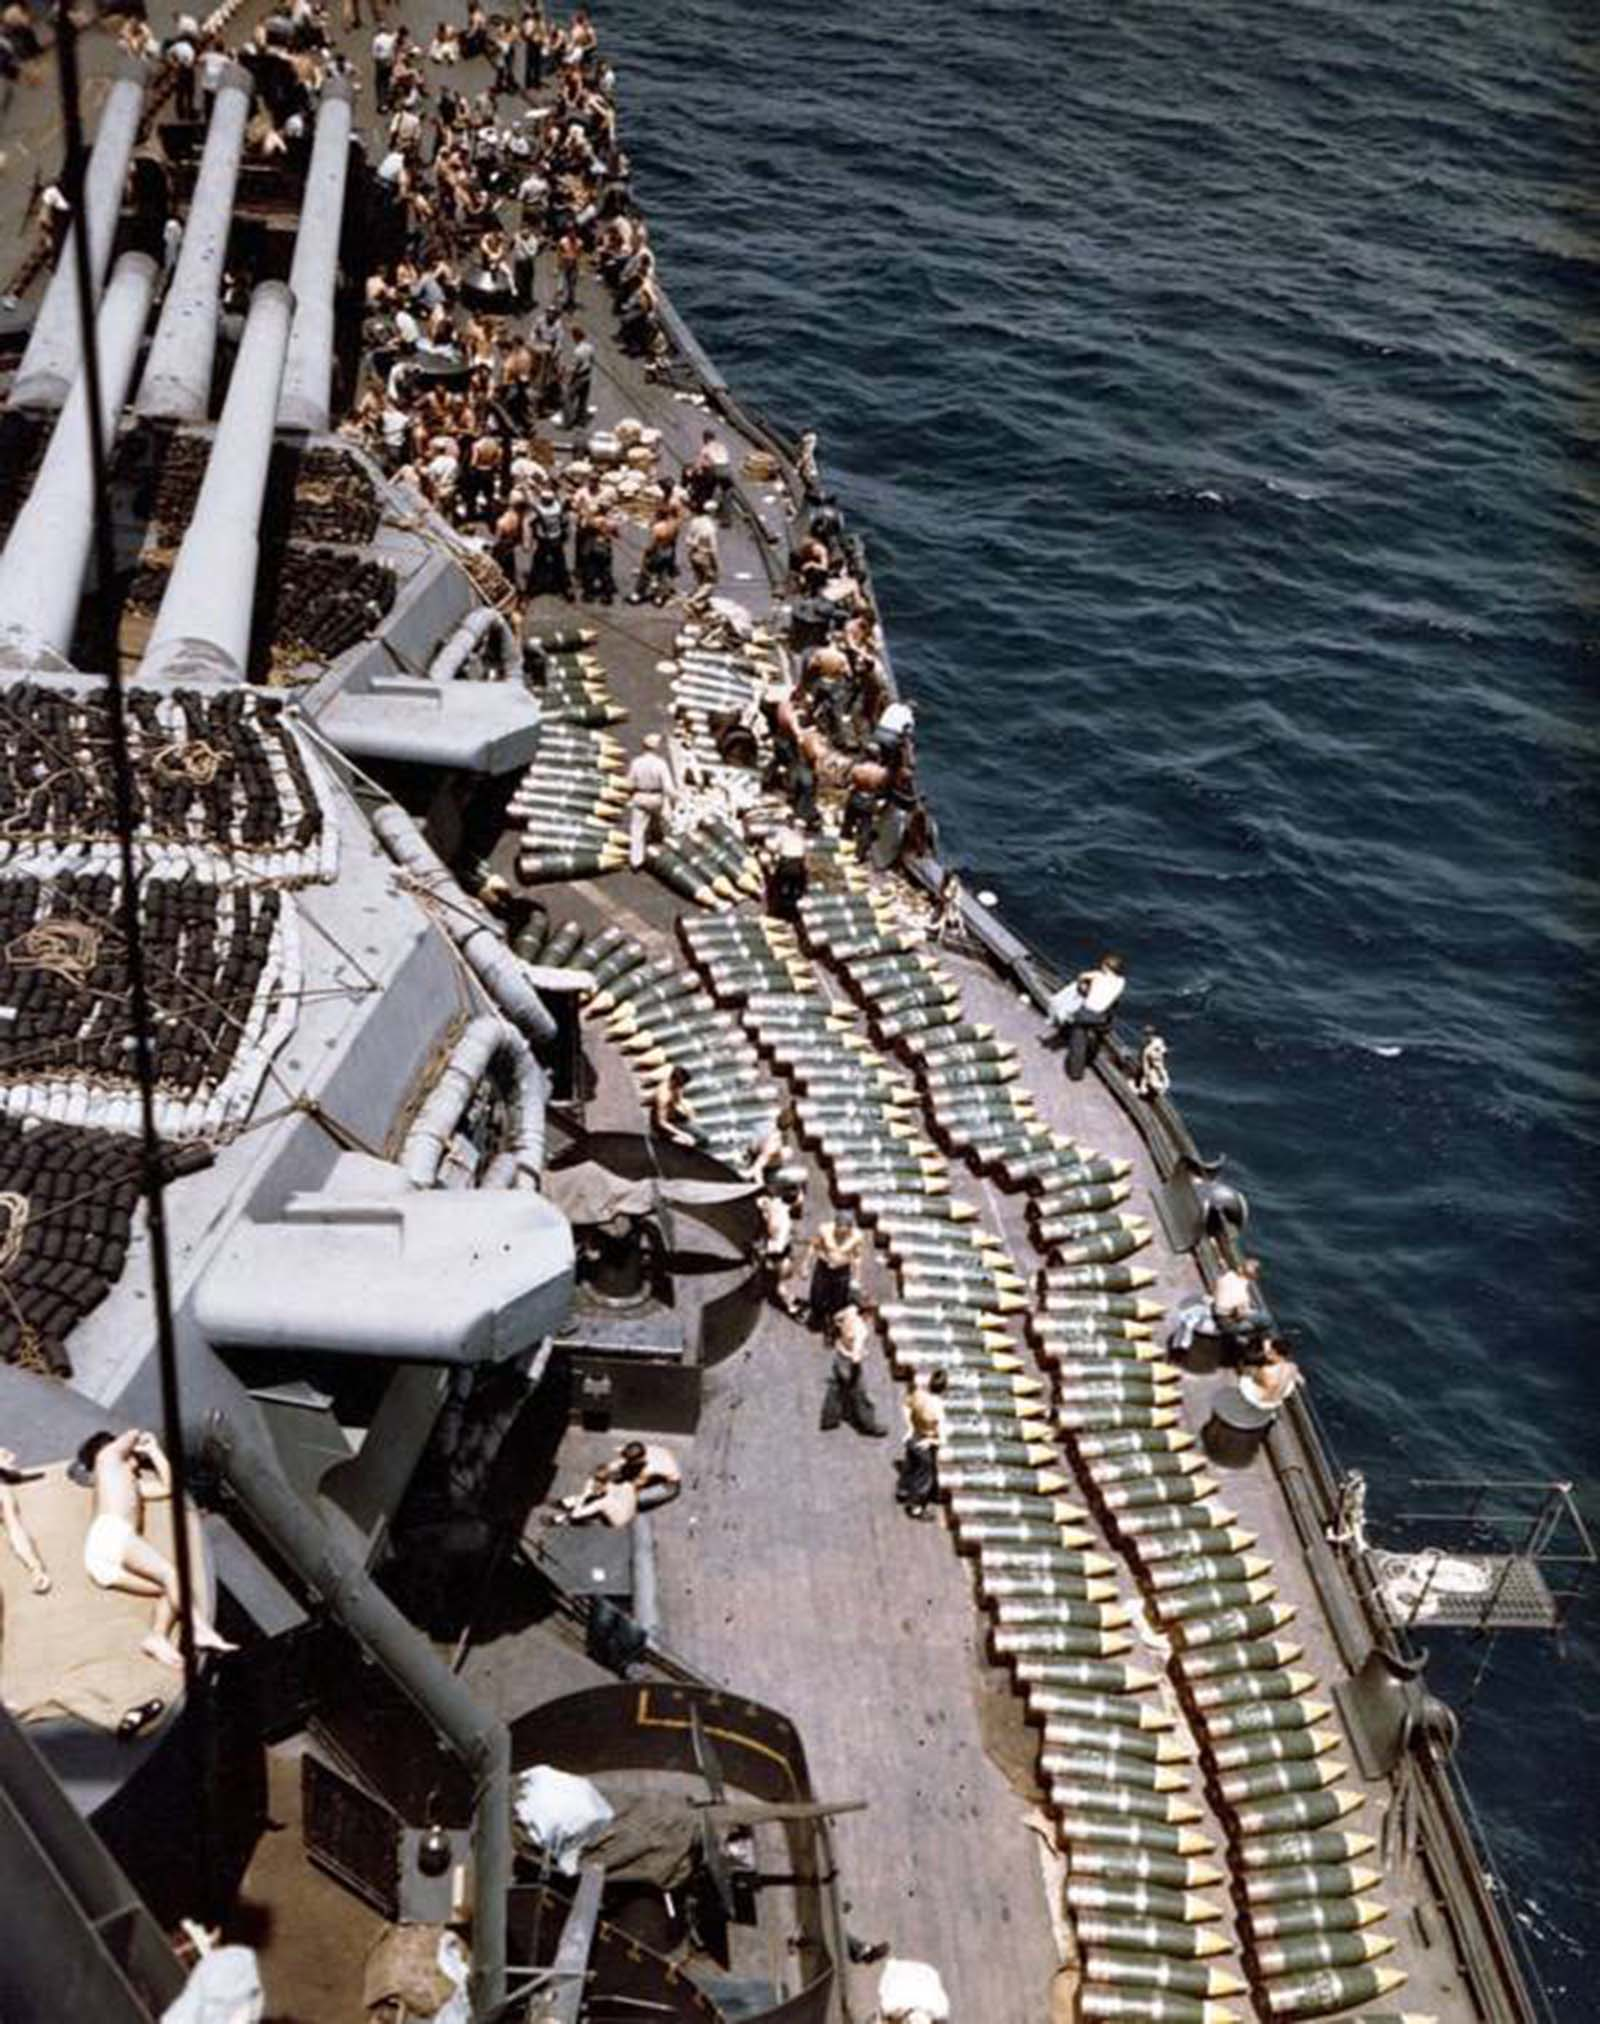 Troops and projectiles line the deck of the battleship USS New Mexico. Invasion of Guam, 1944.